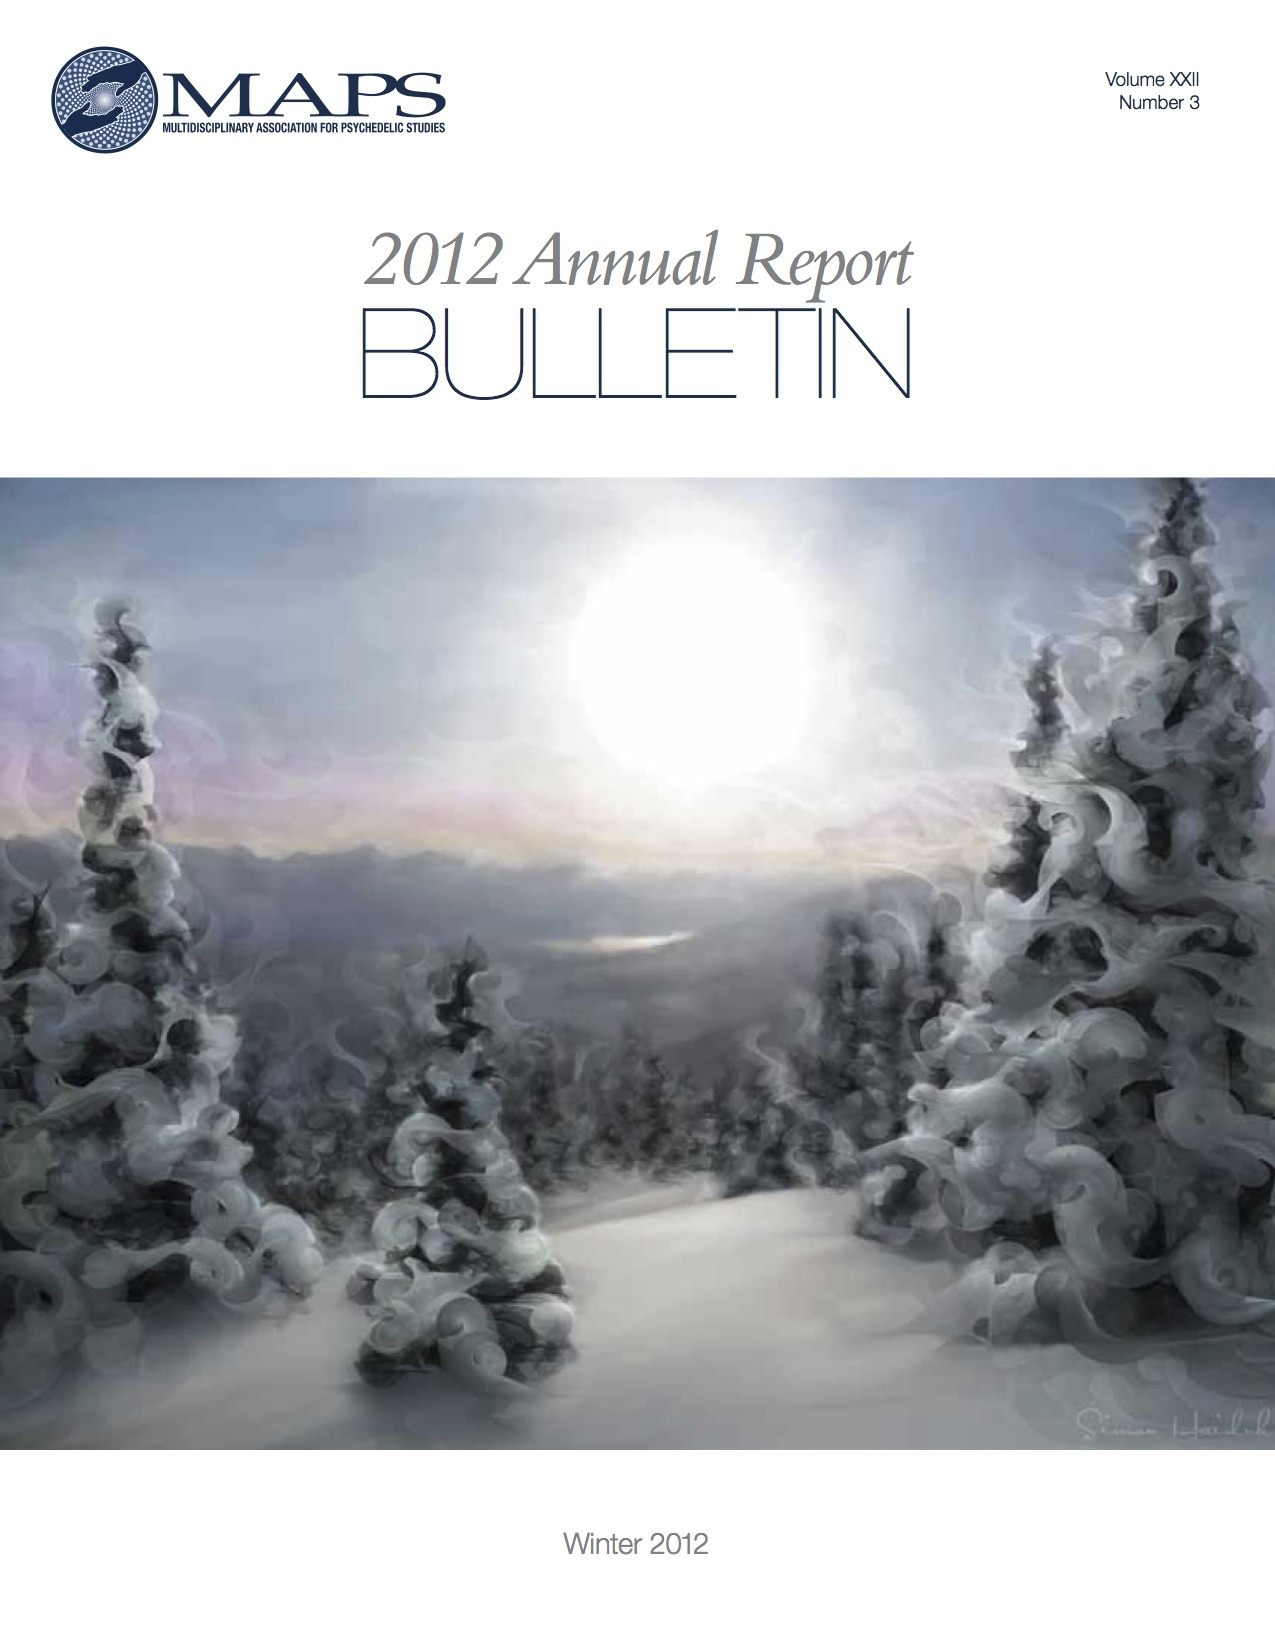 Winter 2012 Vol. 22, No. 3: 2012 Annual Report